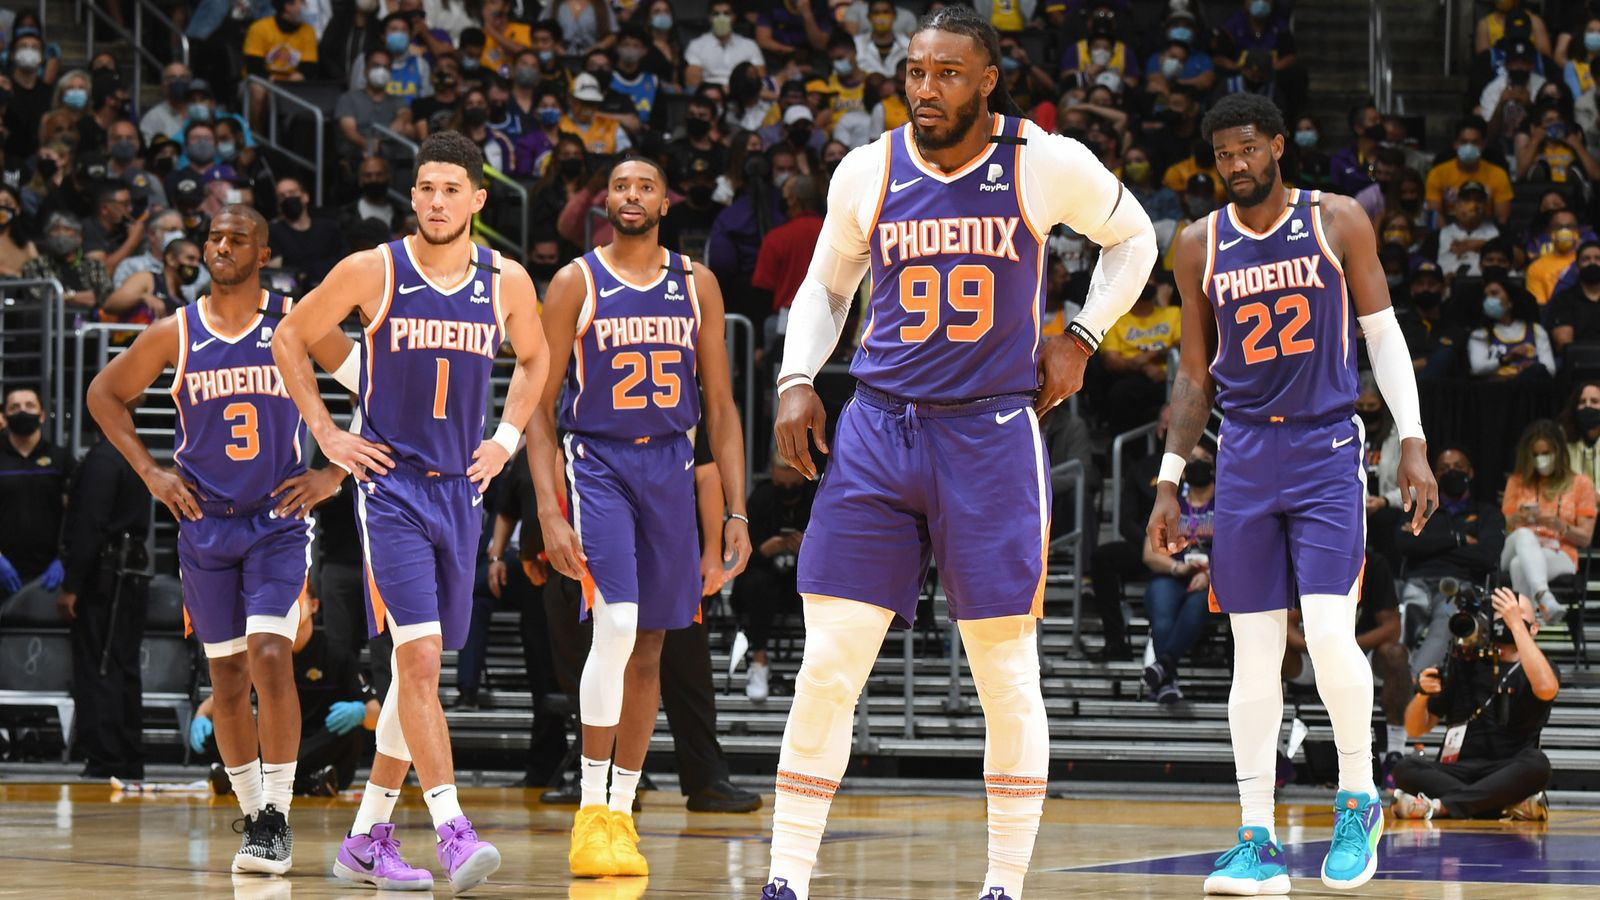 NBA Finals Preview: Meet the Phoenix Suns, worthy conquerers of the Western Conference | NBA News